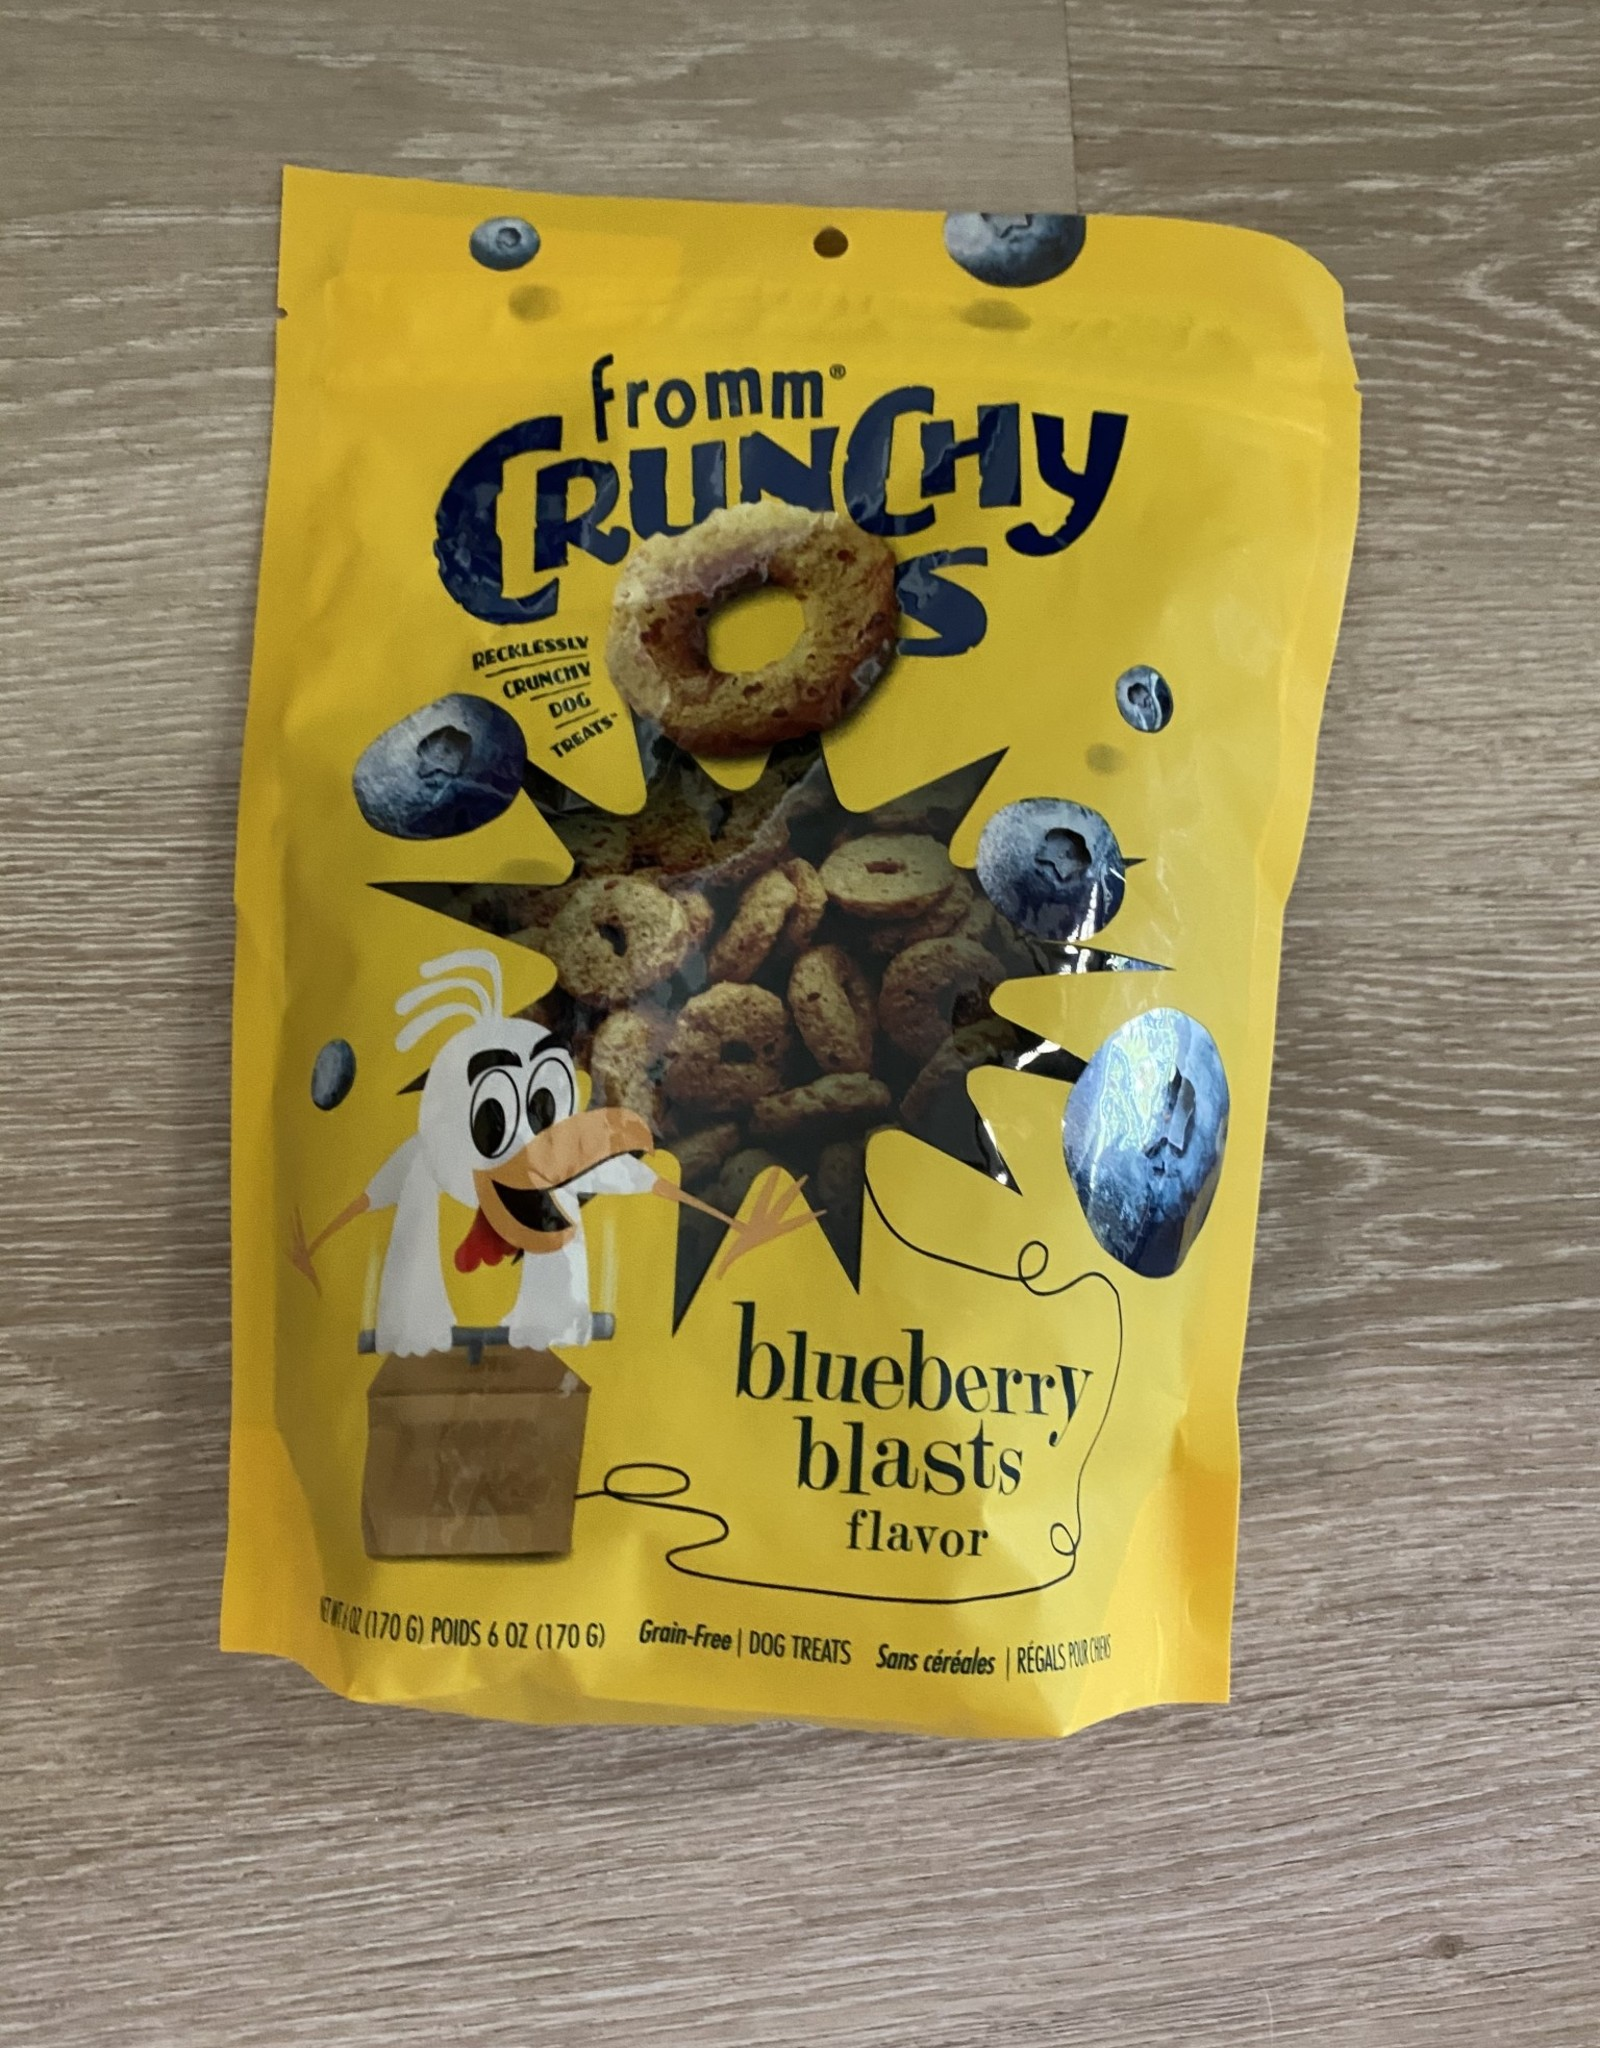 Fromm Crunchy-Os Blueberry